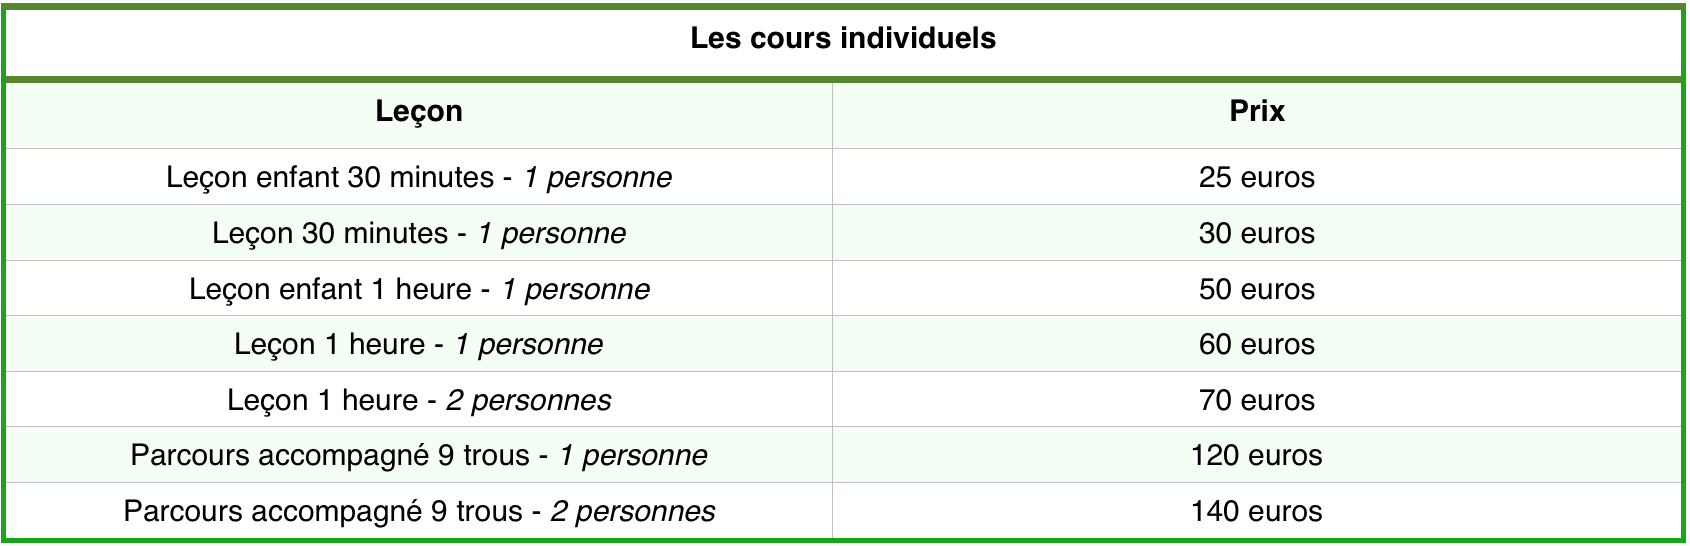 COURS-INDIV